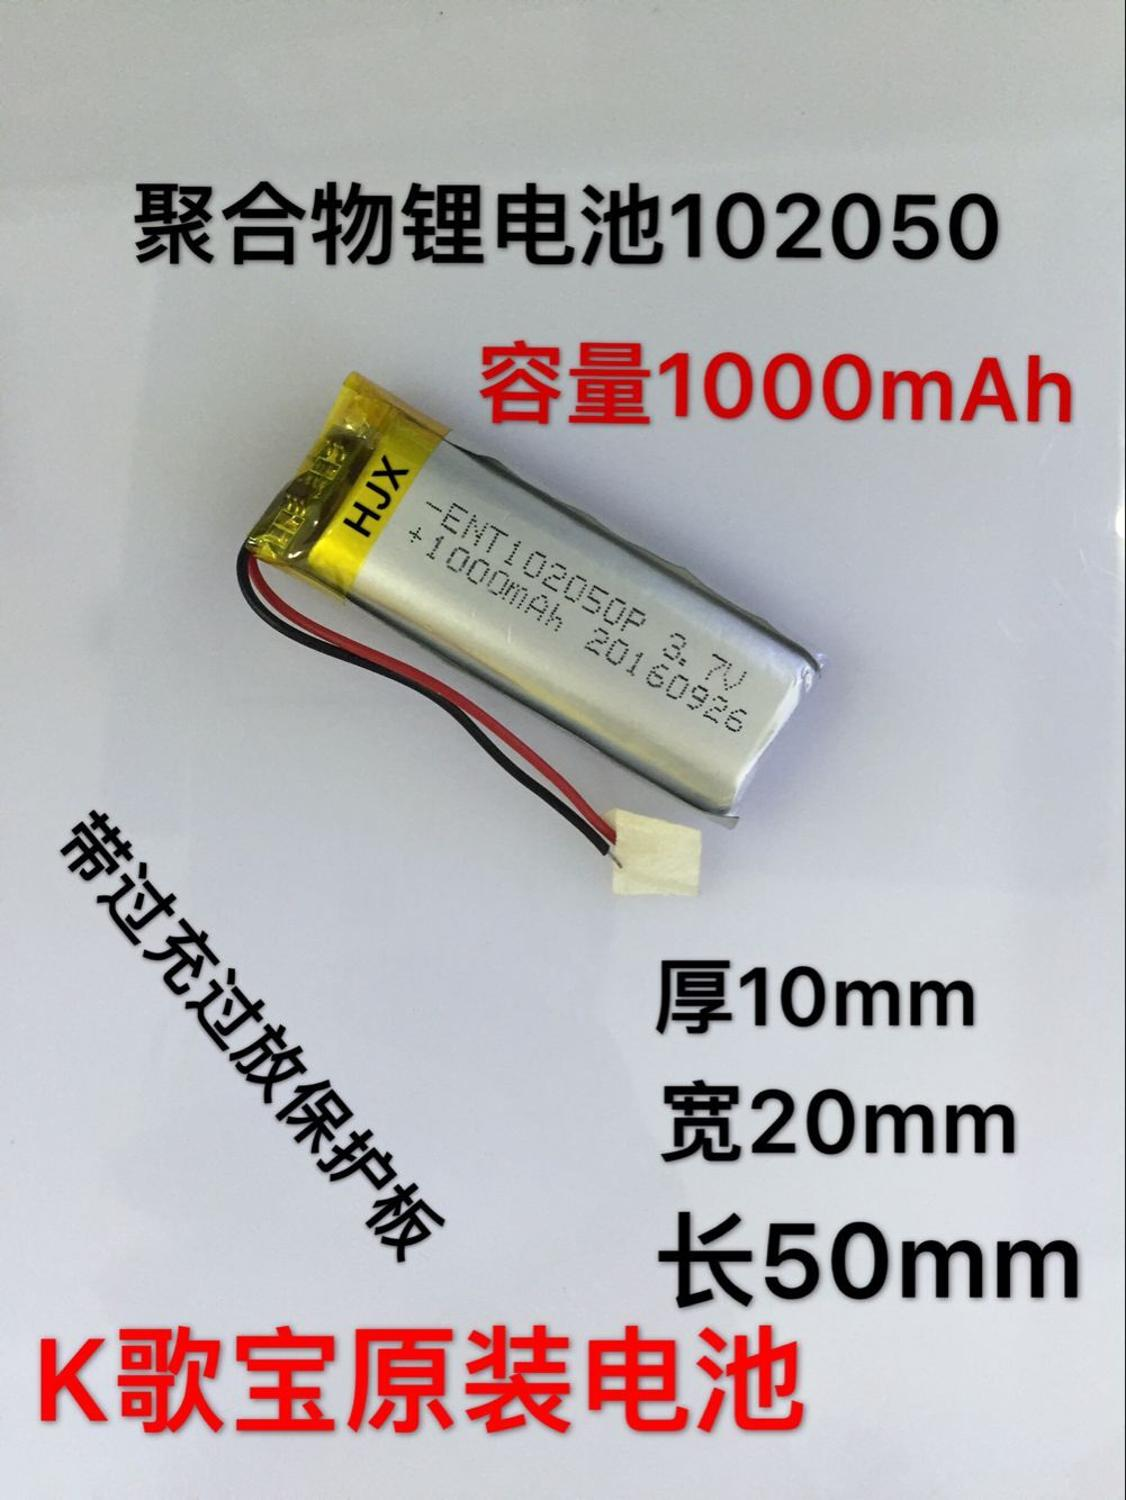 Song Bao special polymer lithium battery 102050 Pocket God Mai wireless WIFI universal lithium battery lithium battery